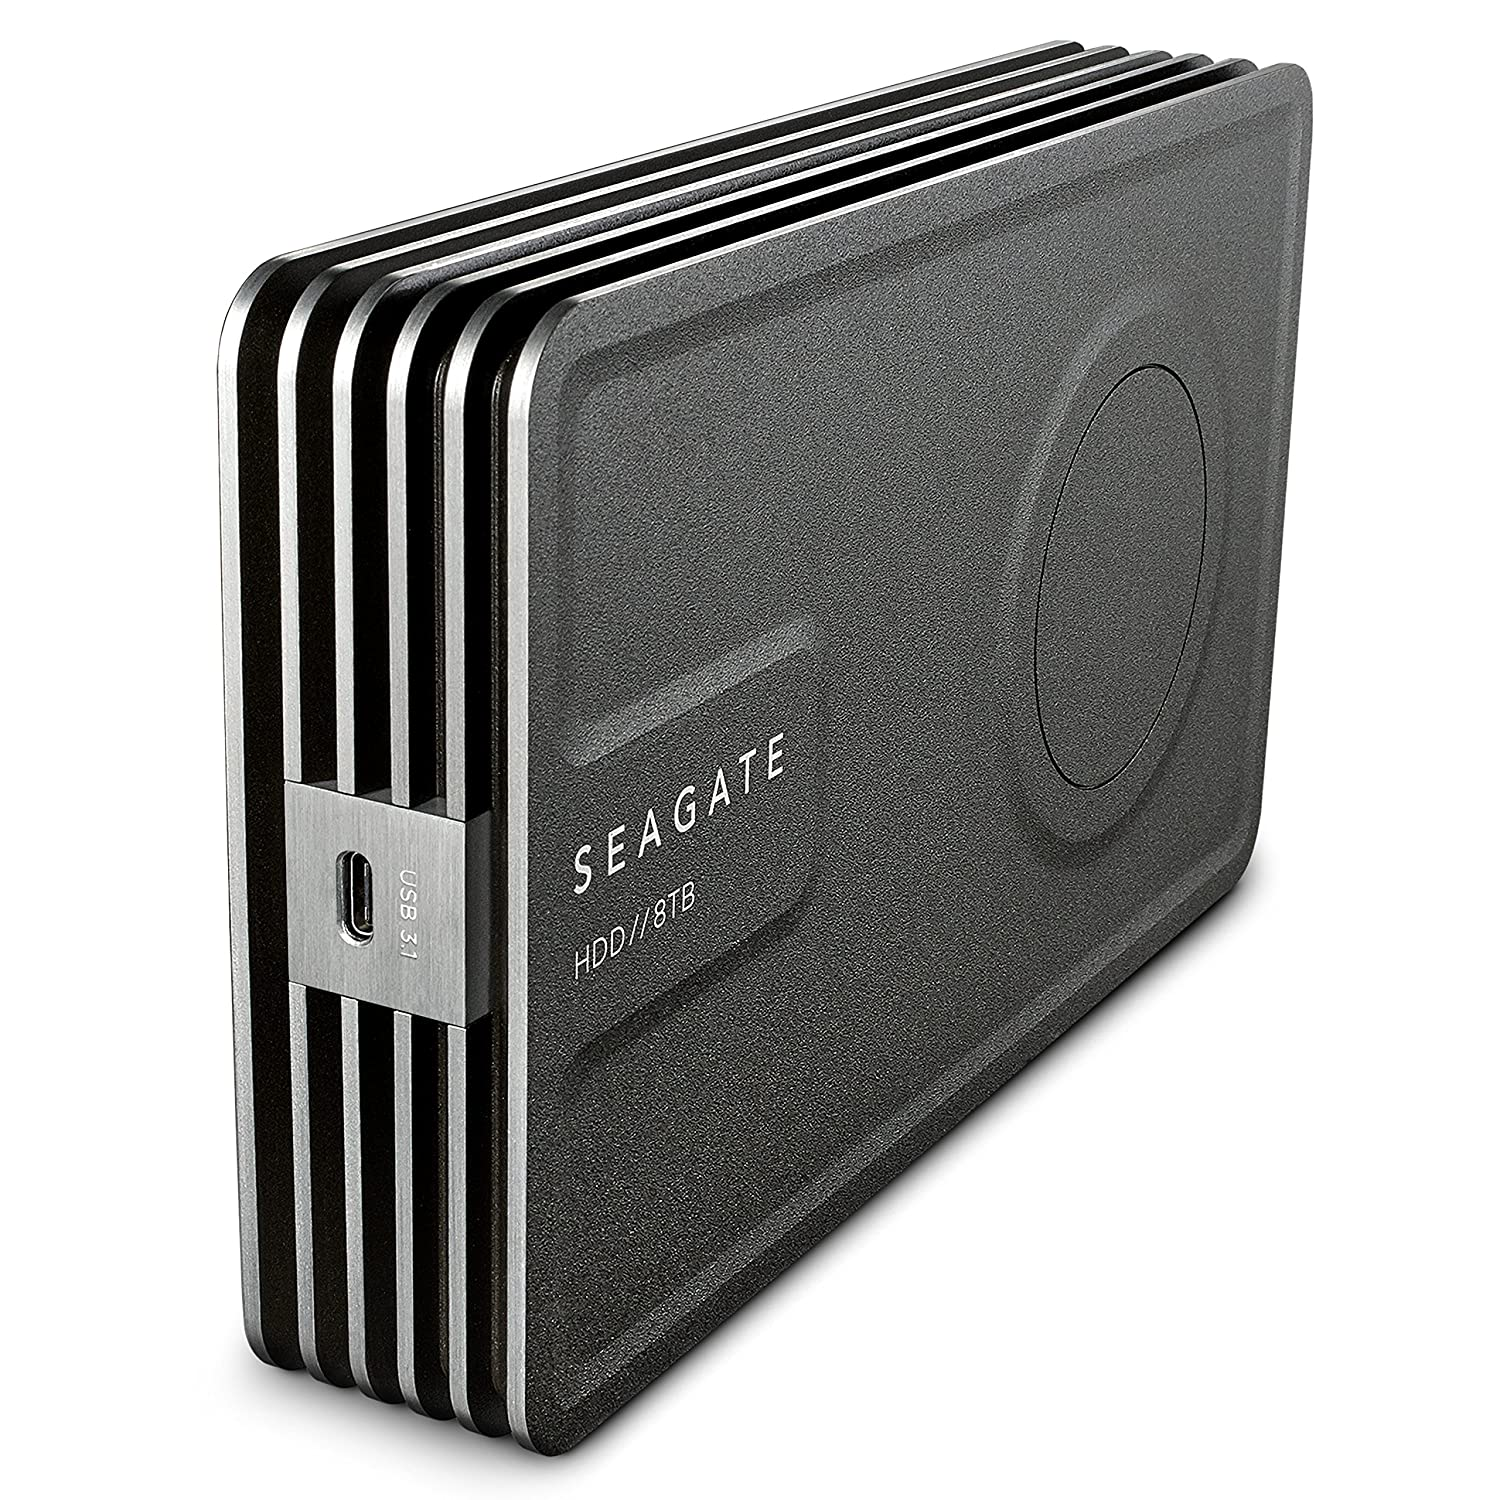 Top 10 Best External Hard Drives for Photographers & Videographers (2019 Reviews) 6